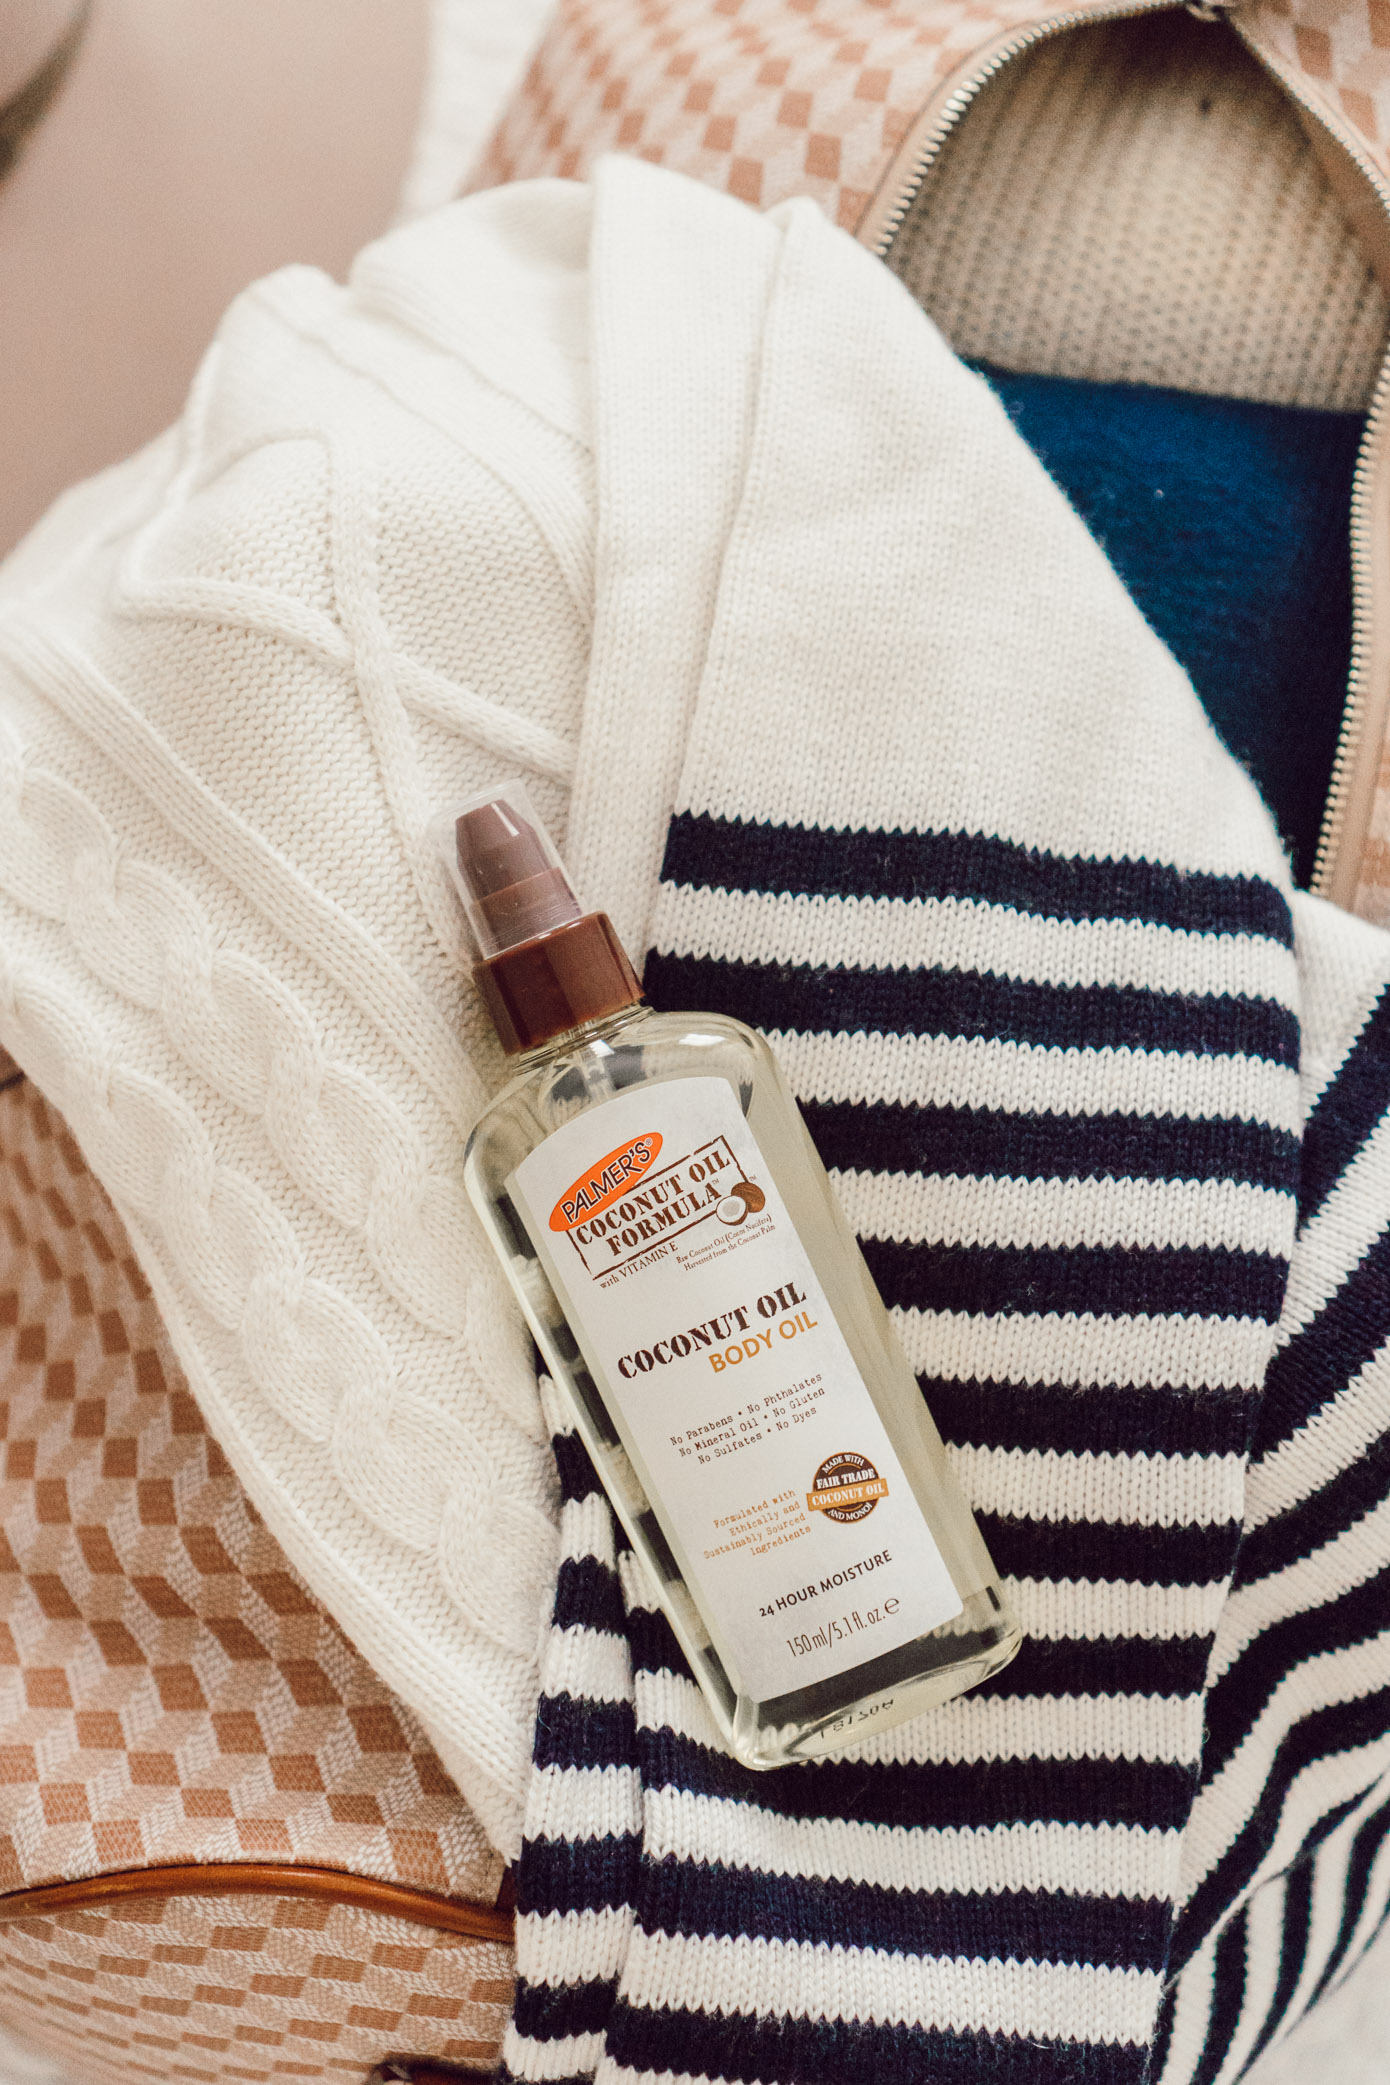 Body Oil, Coconut Oil Skincare | Five Ways to Hydrate Your Skin While Traveling featured on Louella Reese